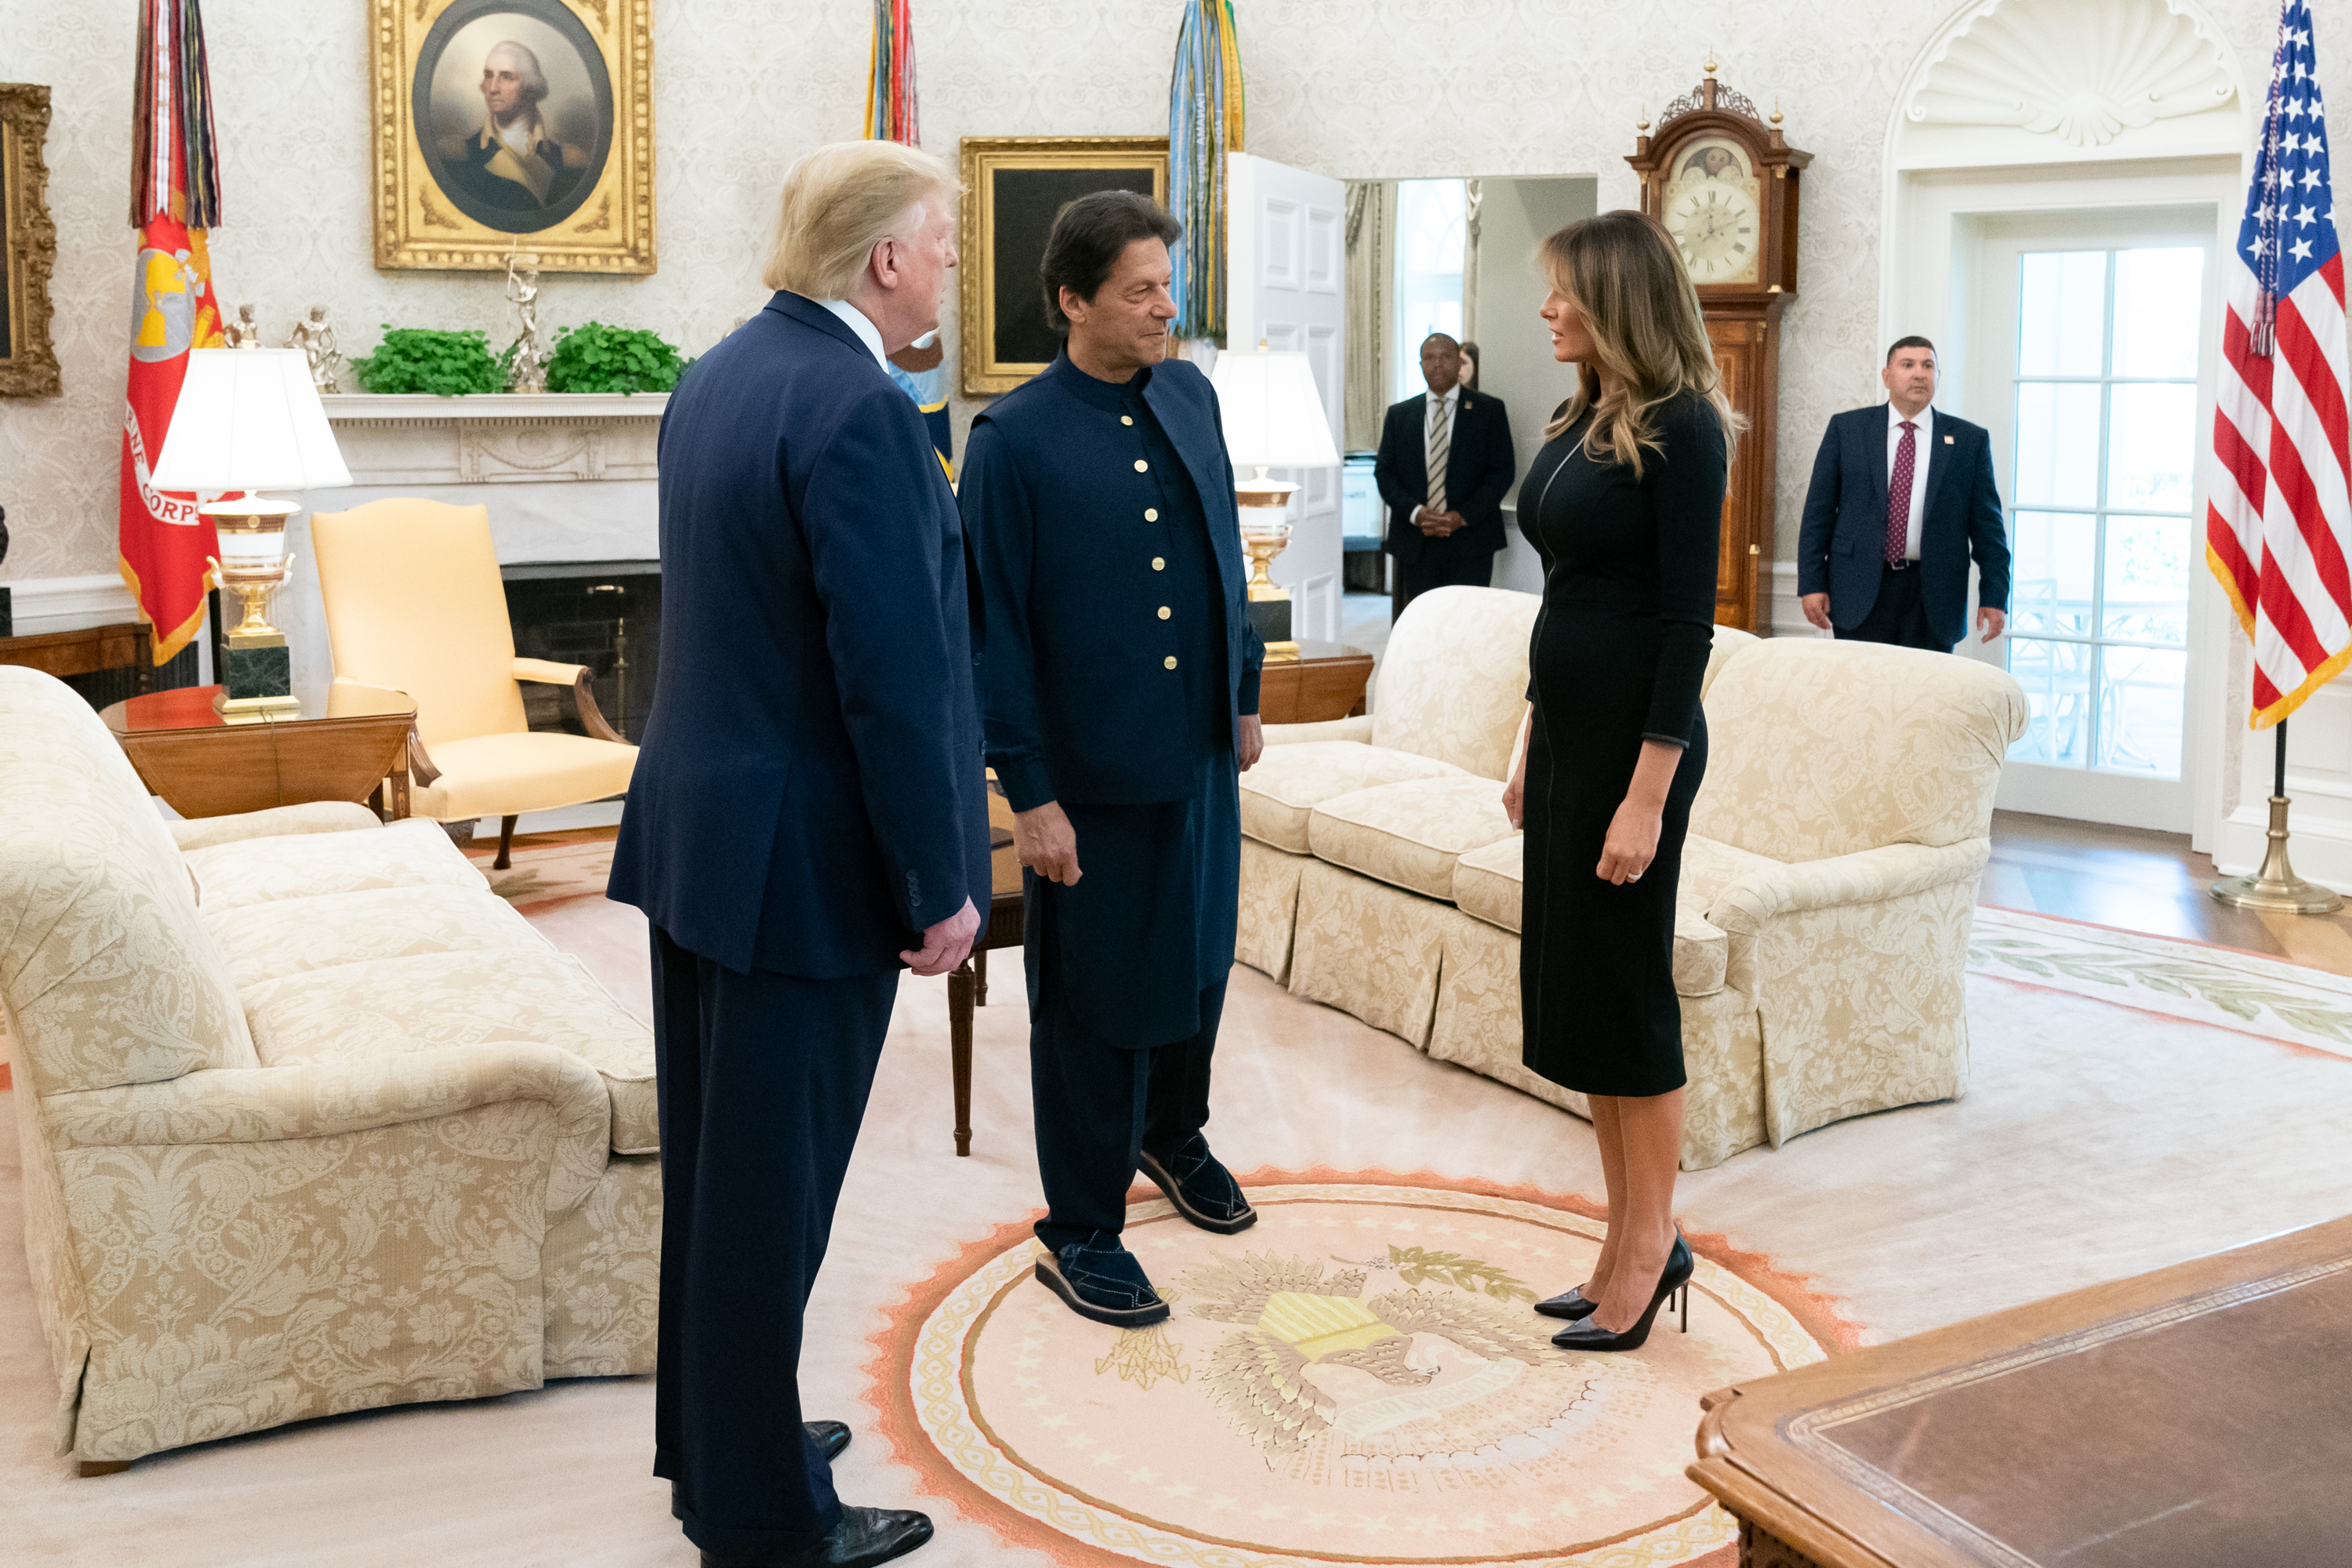 Donald J. Trump and Melania Trump greet the Prime Minister of the Islamic Republic of Pakistan Imran Khan Monday, July 22, 2019, in the Oval Office of the White House. (Official White House Photo by Andrea Hanks, via Wikimedia Commons)